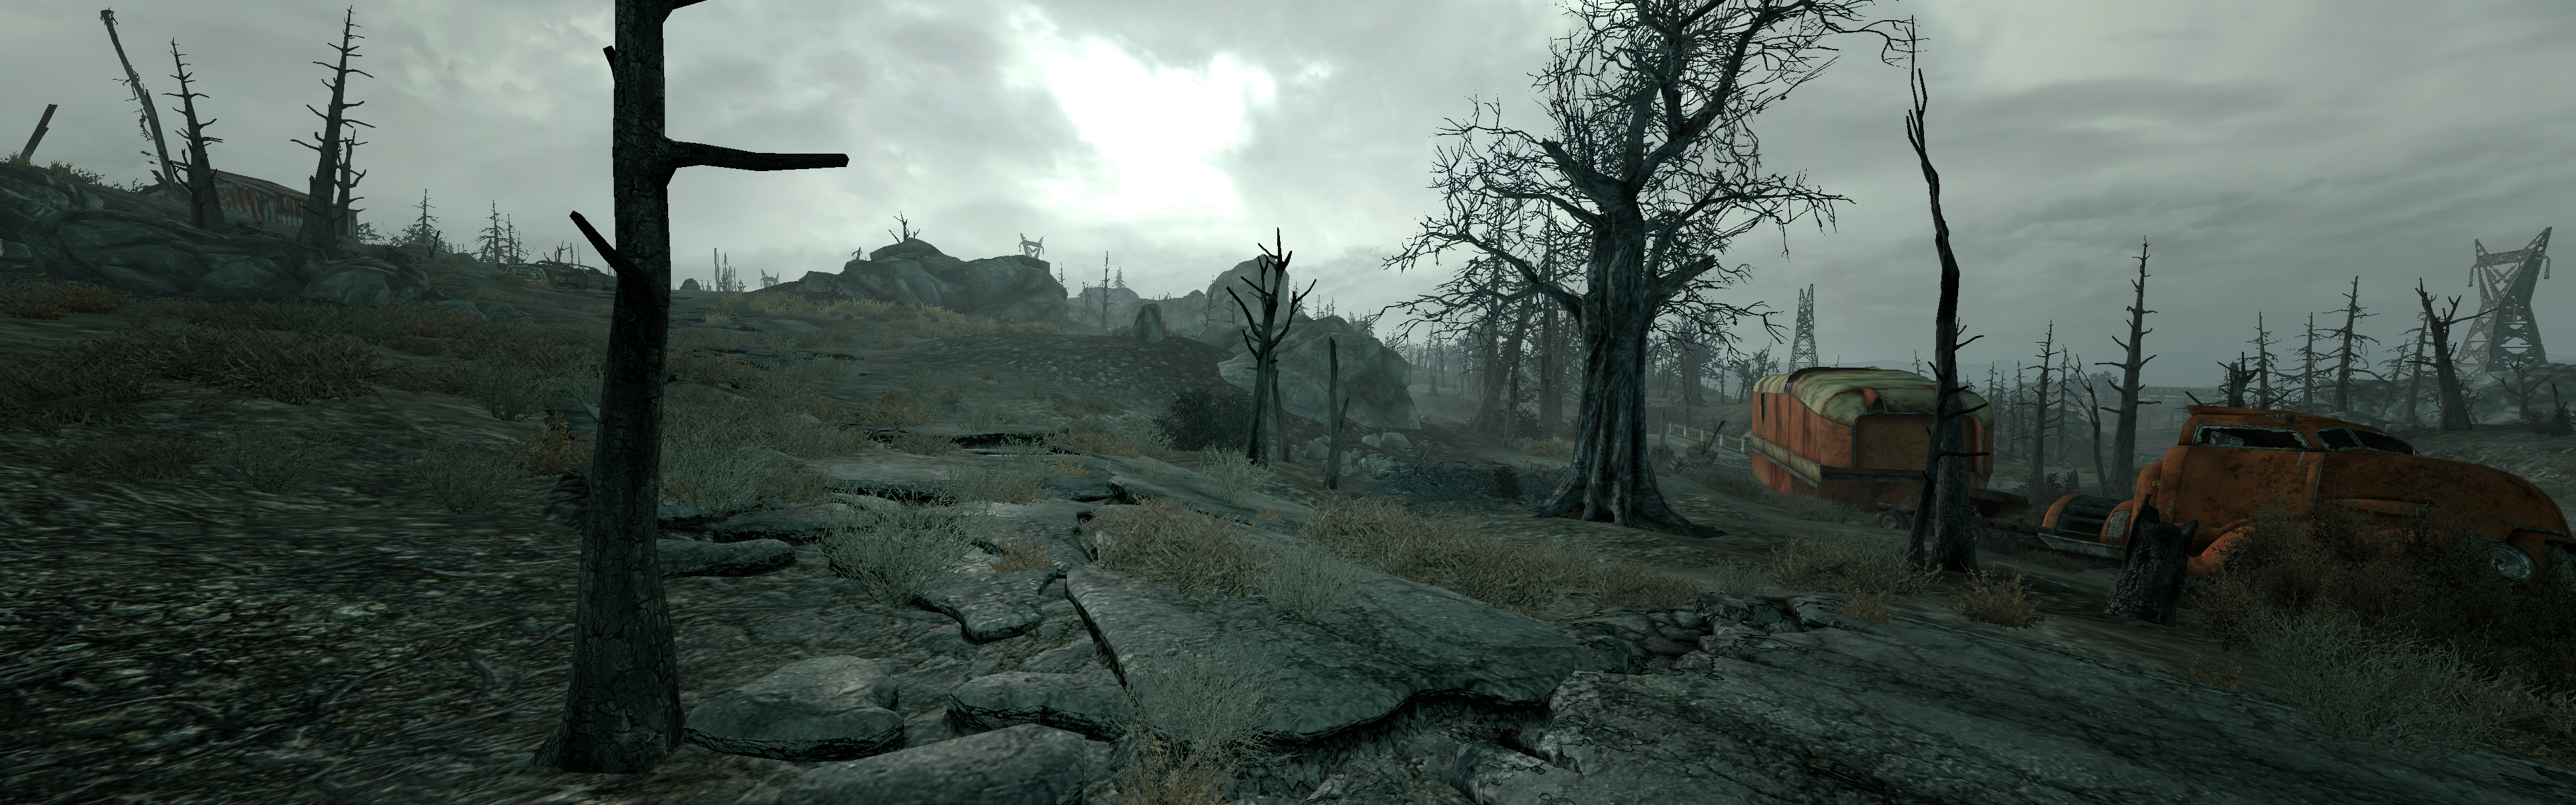 Fallout3 Dual Screen Wallpaper By Stickweed